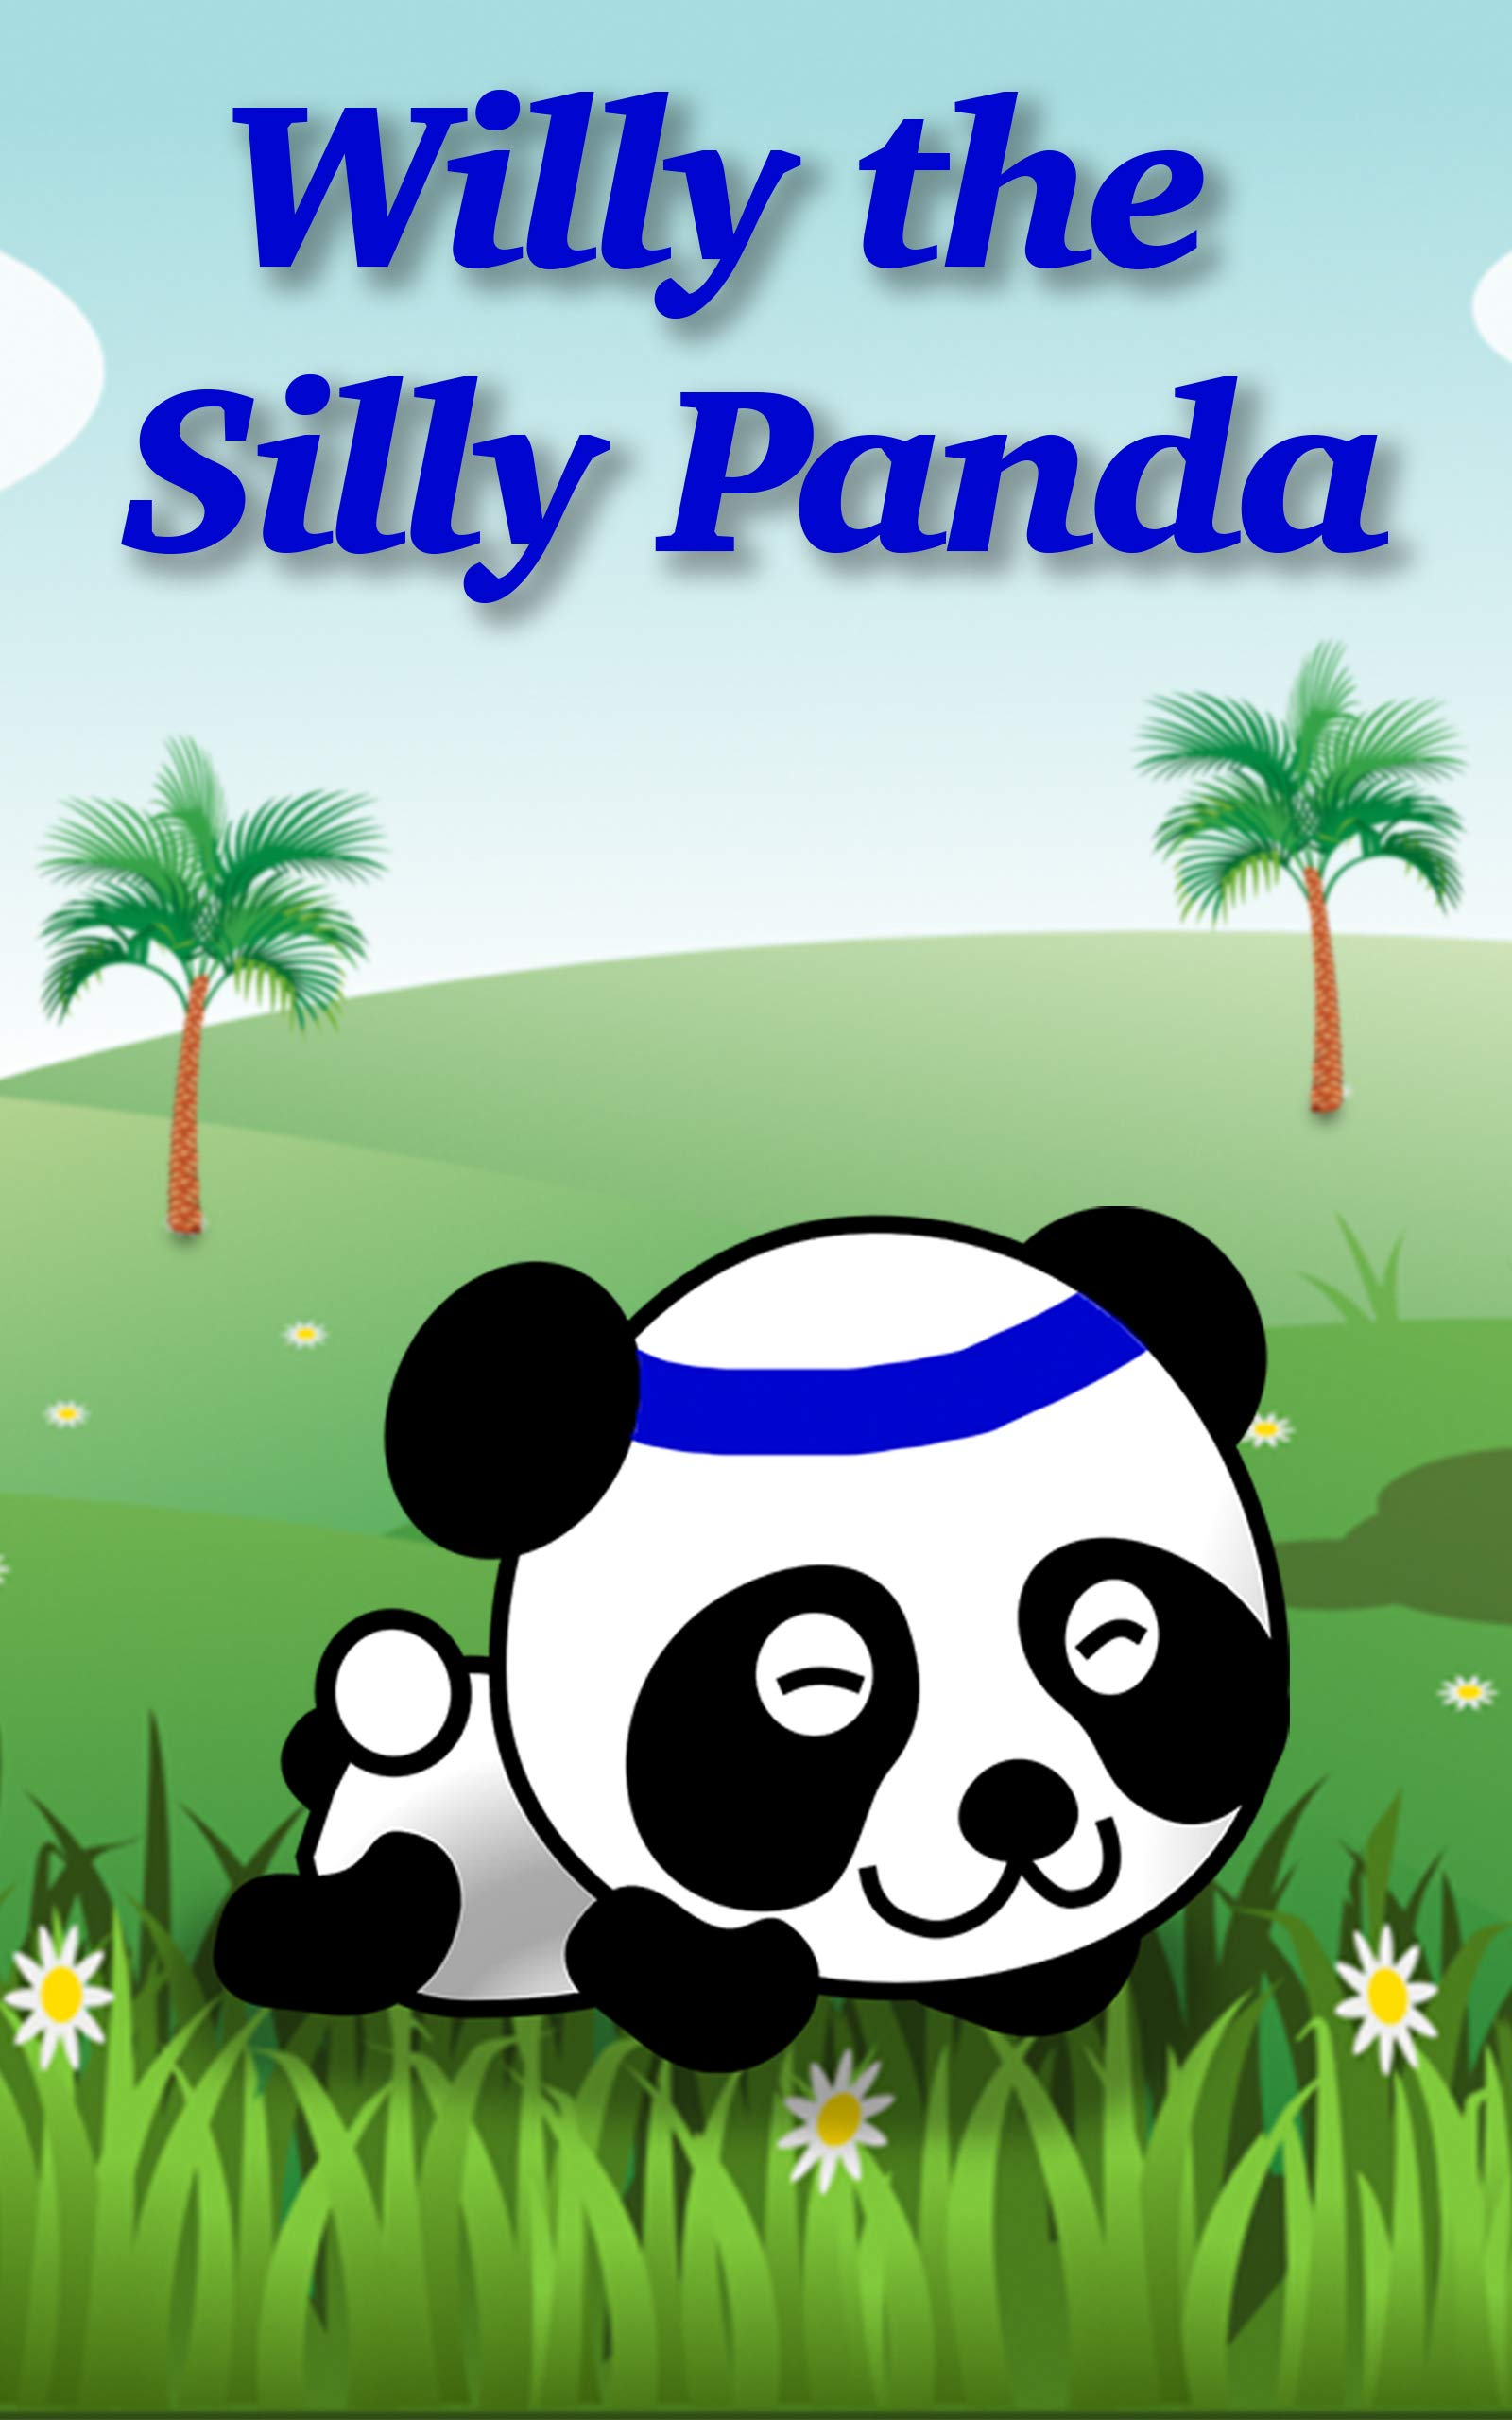 Books For Kids - Willy the Silly Panda: Bedtime Stories For Kids Ages 3-6 (Children's Books - Free Stories)